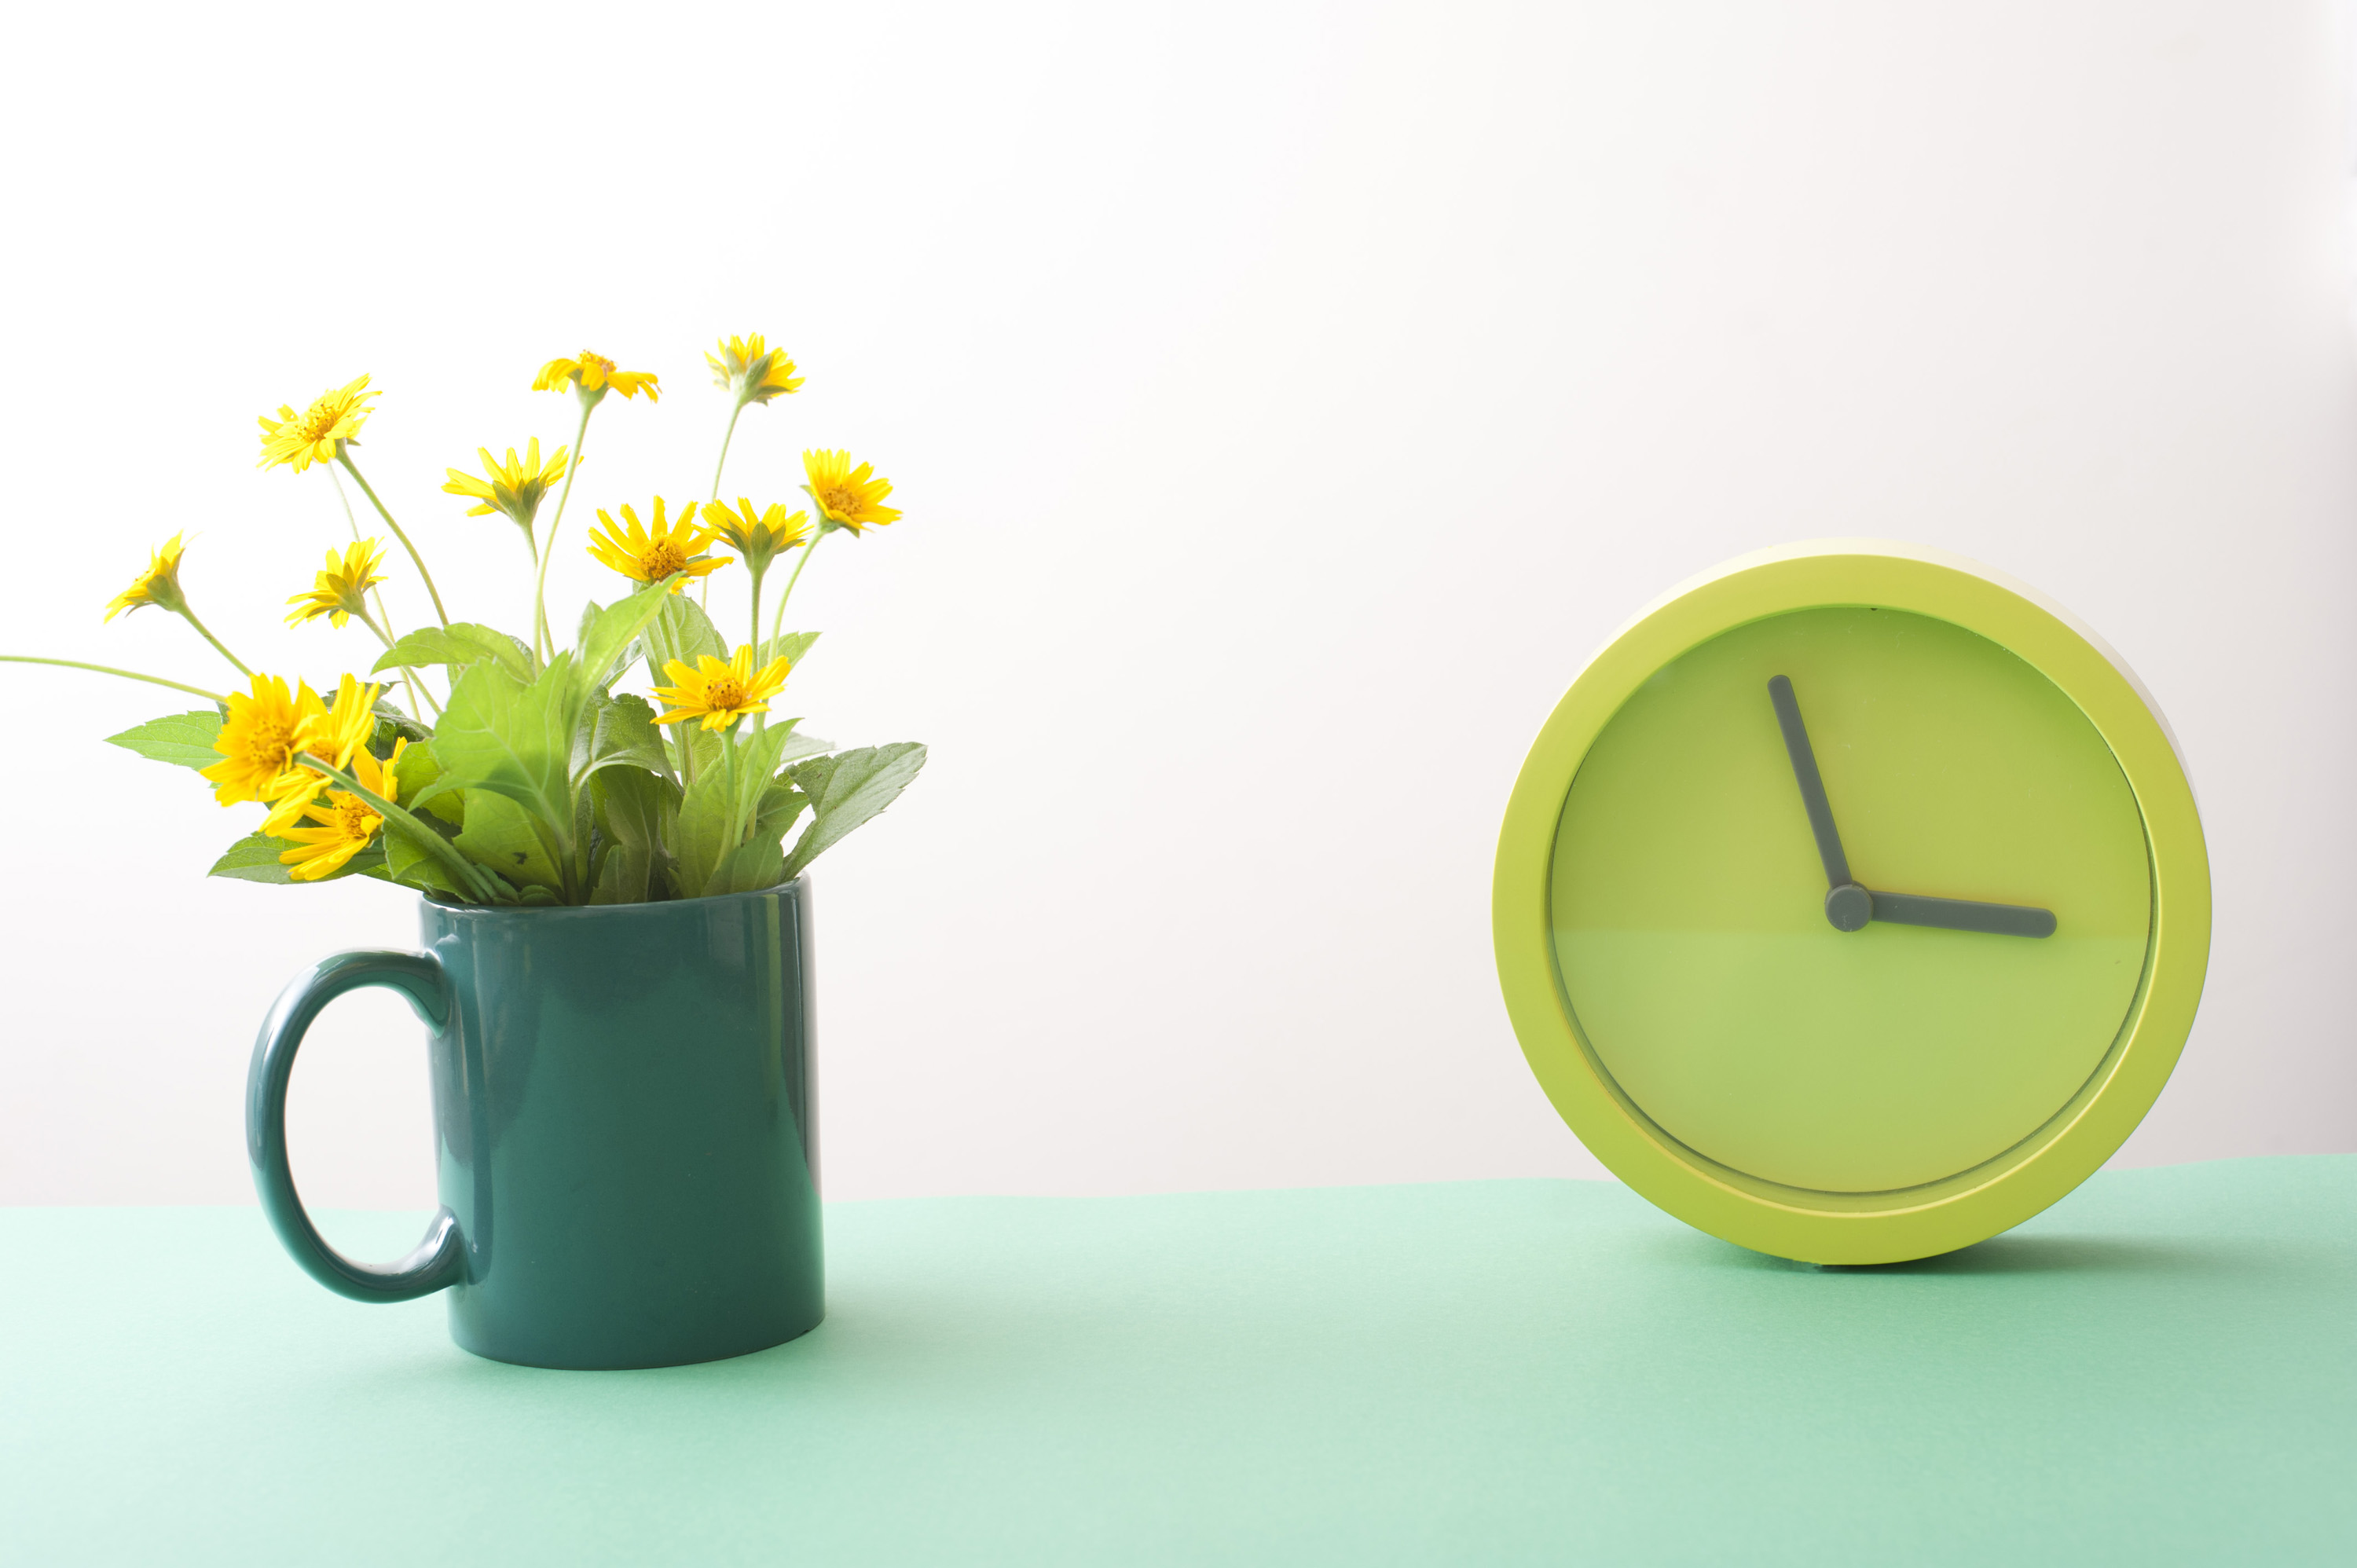 easter_time_background.jpg - Yellow spring flowers in green mug and simple round green watch on turquoise surface over white background. Easter time concept